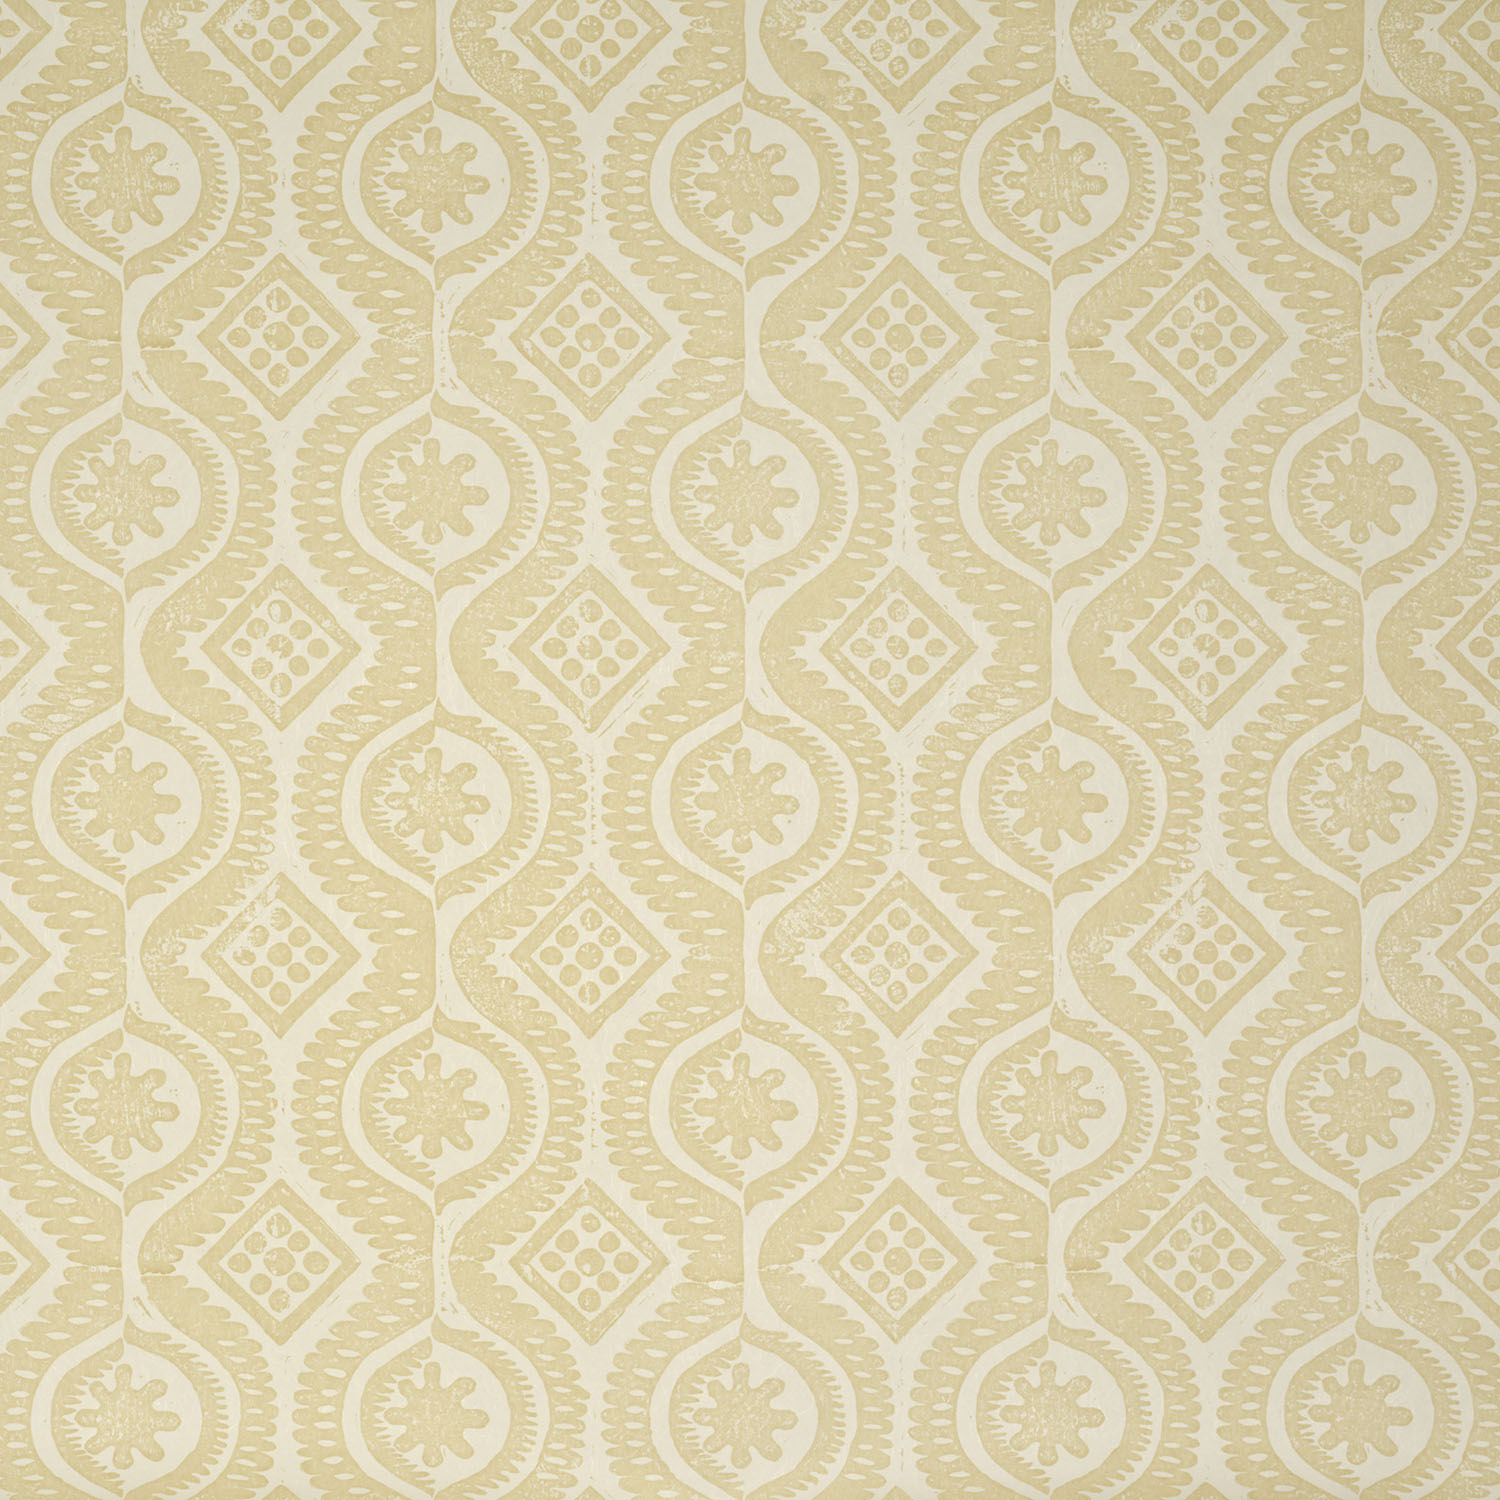 <p><strong>DAMASK</strong>yellow 850-03<a href=/the-peggy-angus-collection/damask-yellow-850-03>More →</a></p>